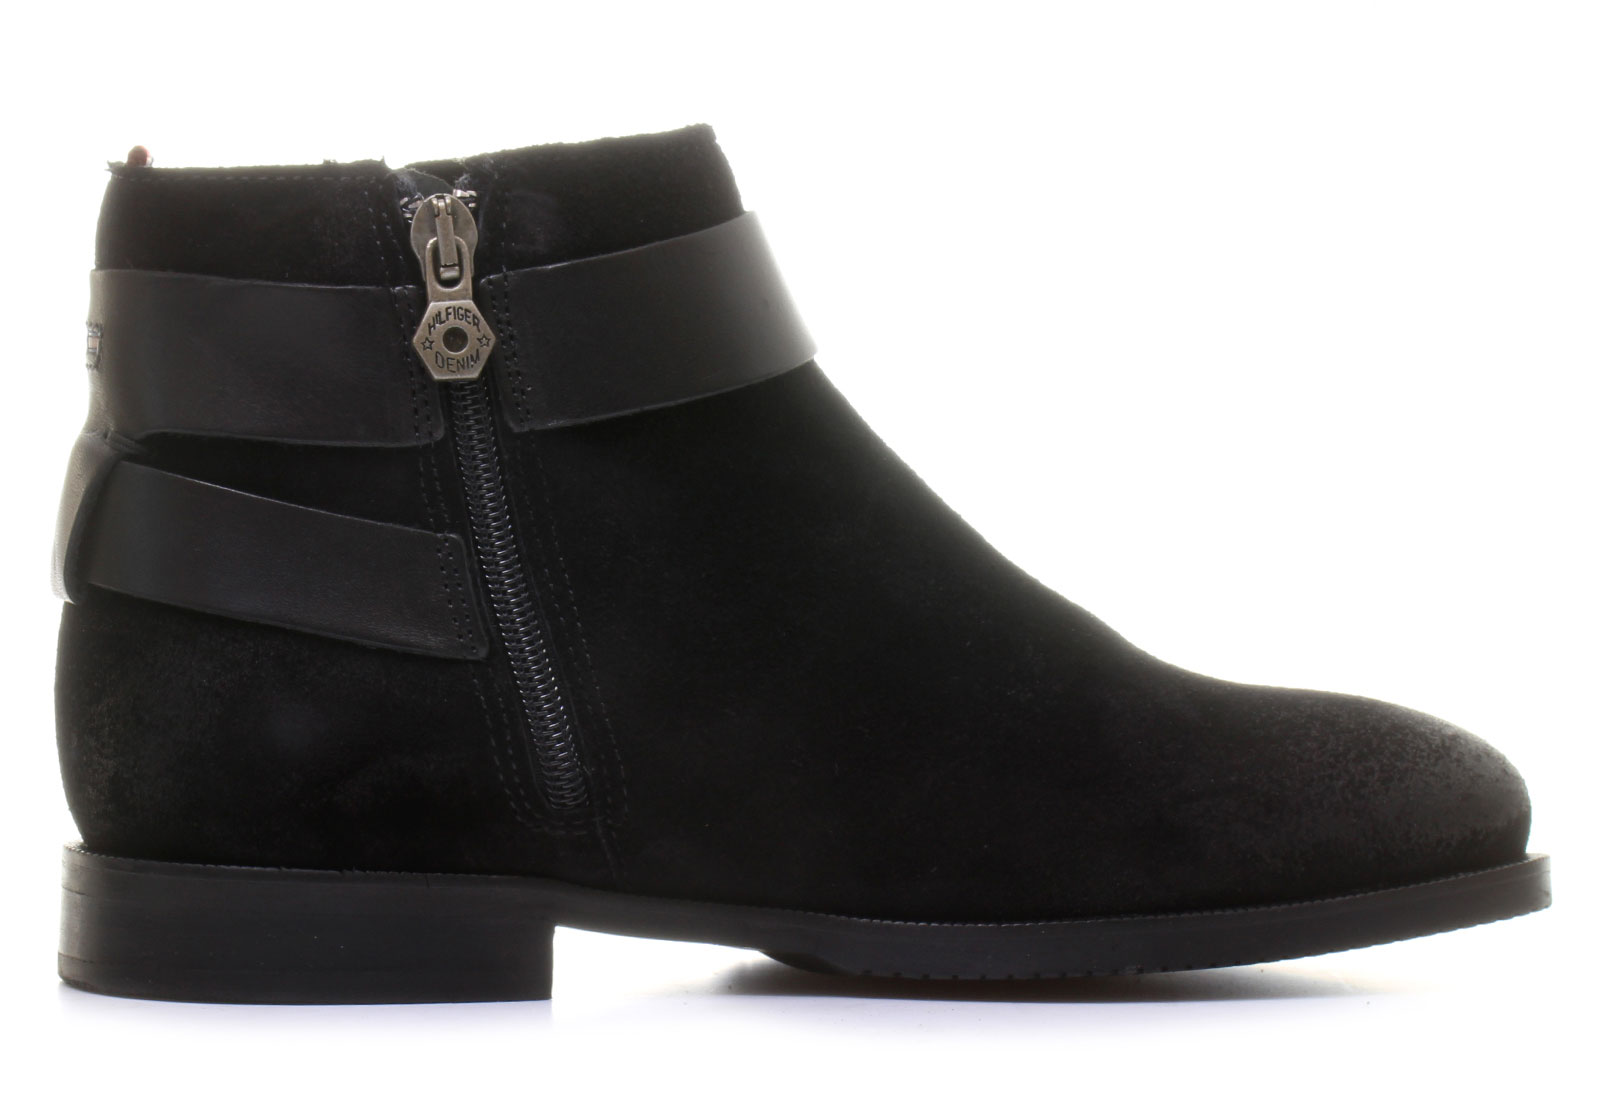 tommy hilfiger boots genny 10c 16f 1977 990 online shop for sneakers shoes and boots. Black Bedroom Furniture Sets. Home Design Ideas